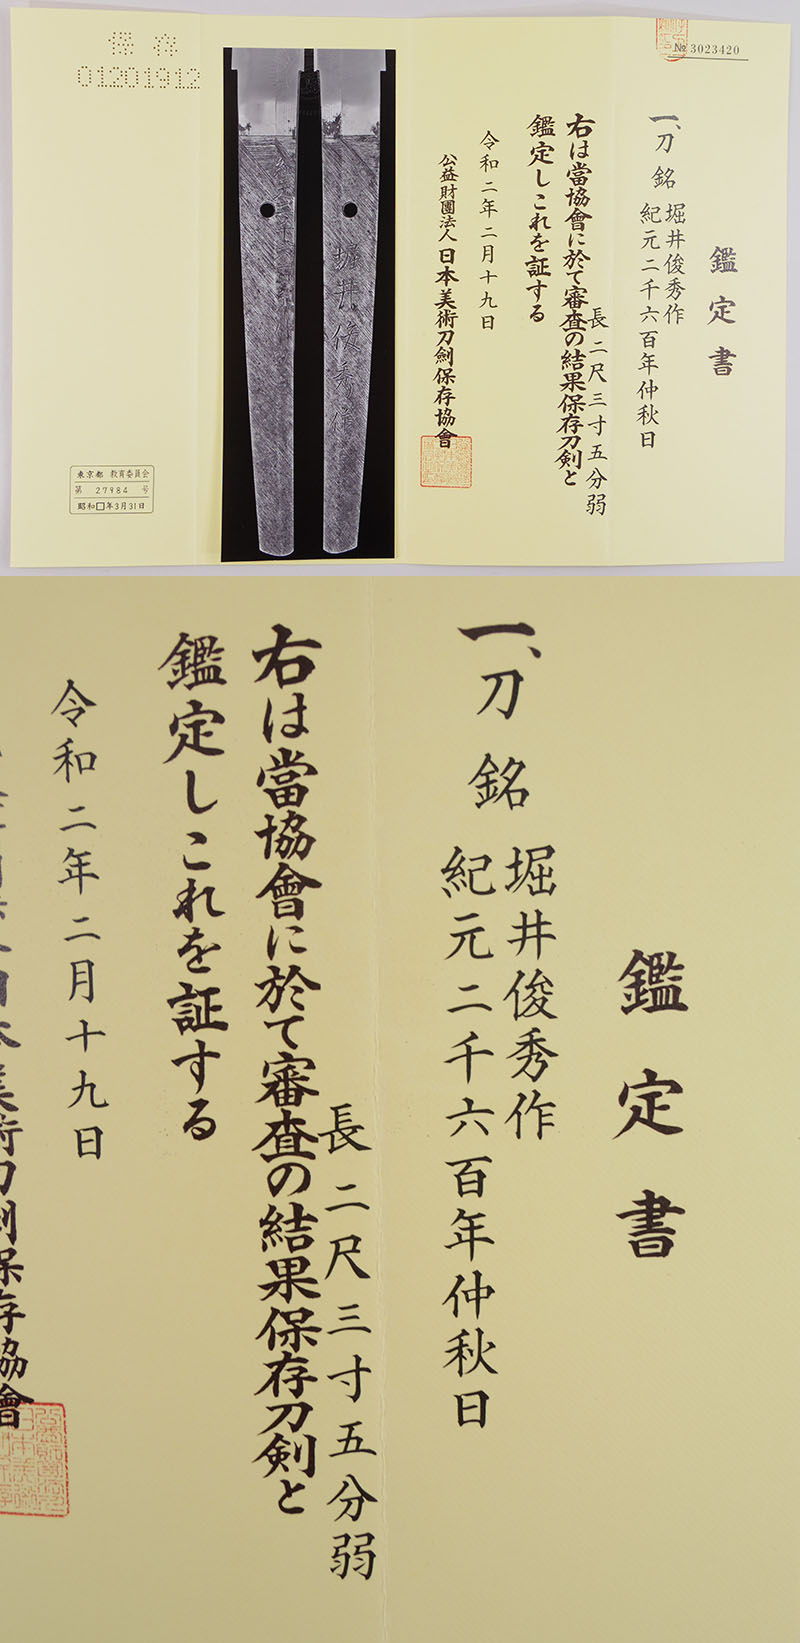 堀井俊秀作 紀元二千六百年仲秋日 Picture of Certificate